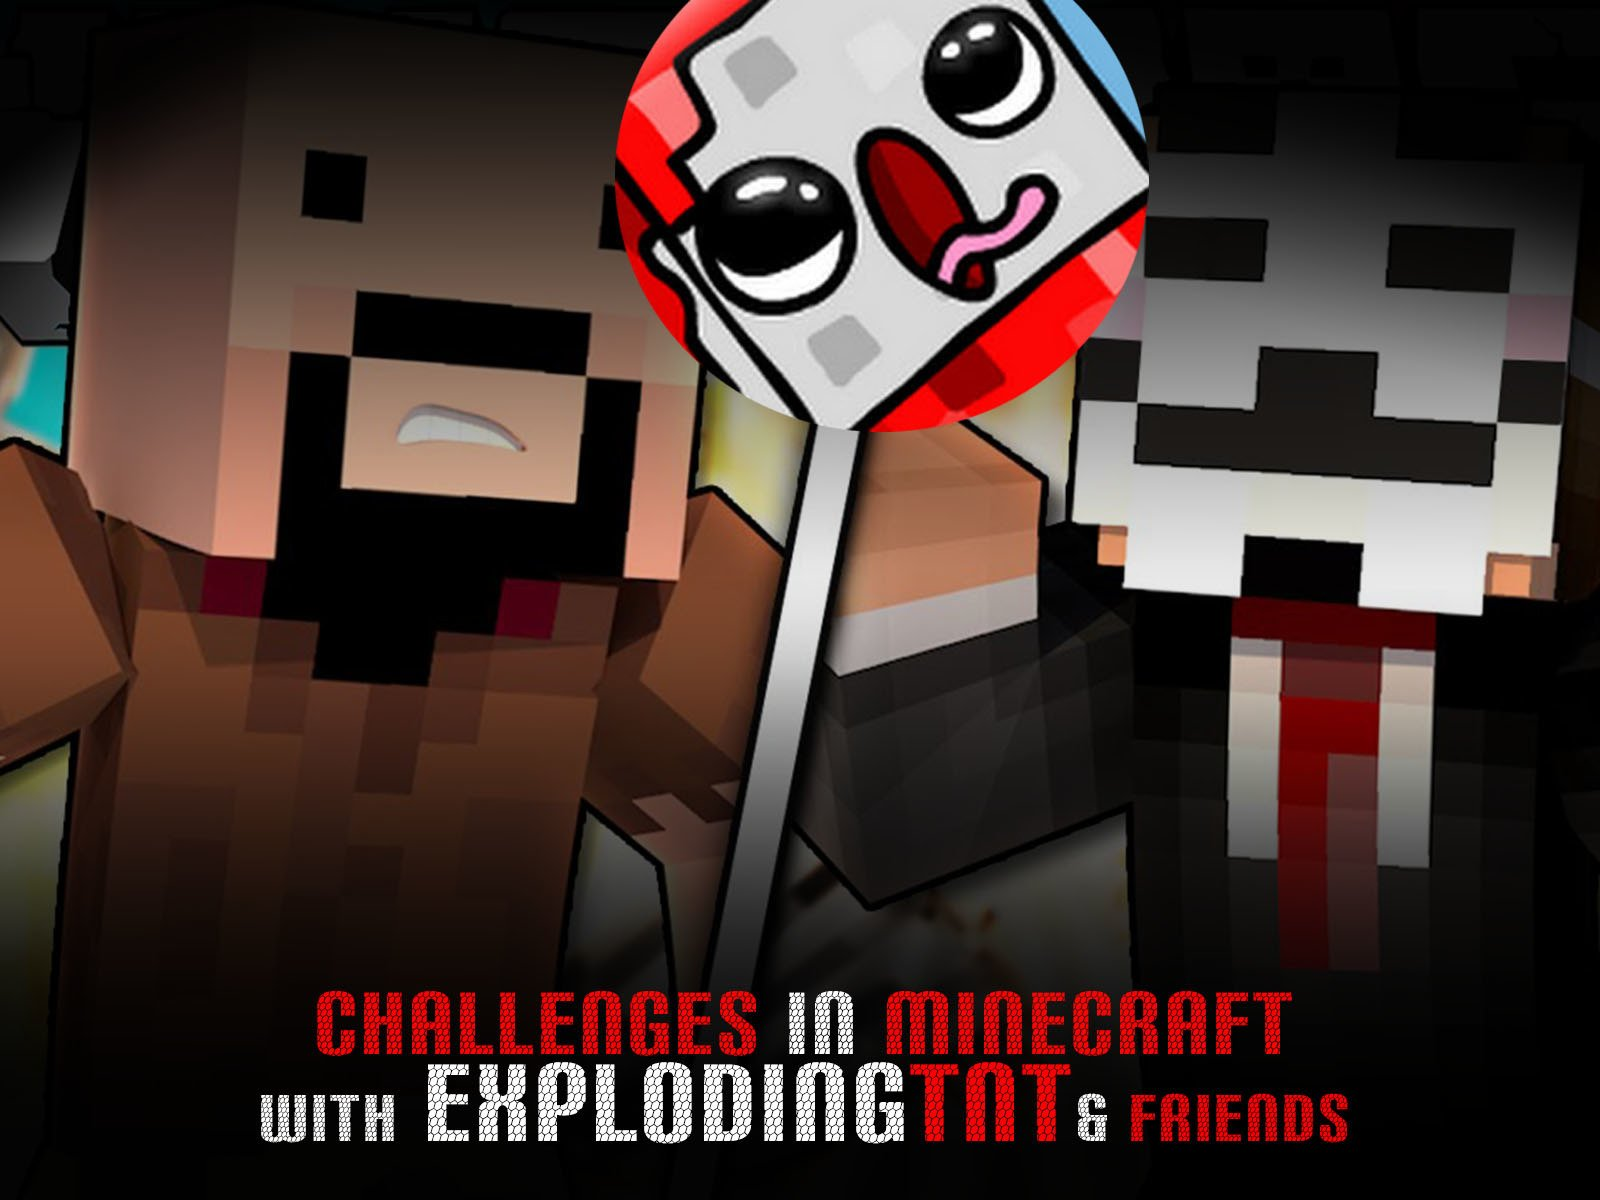 Challenges in Minecraft with ExplodingTNT & Friends - Season 1